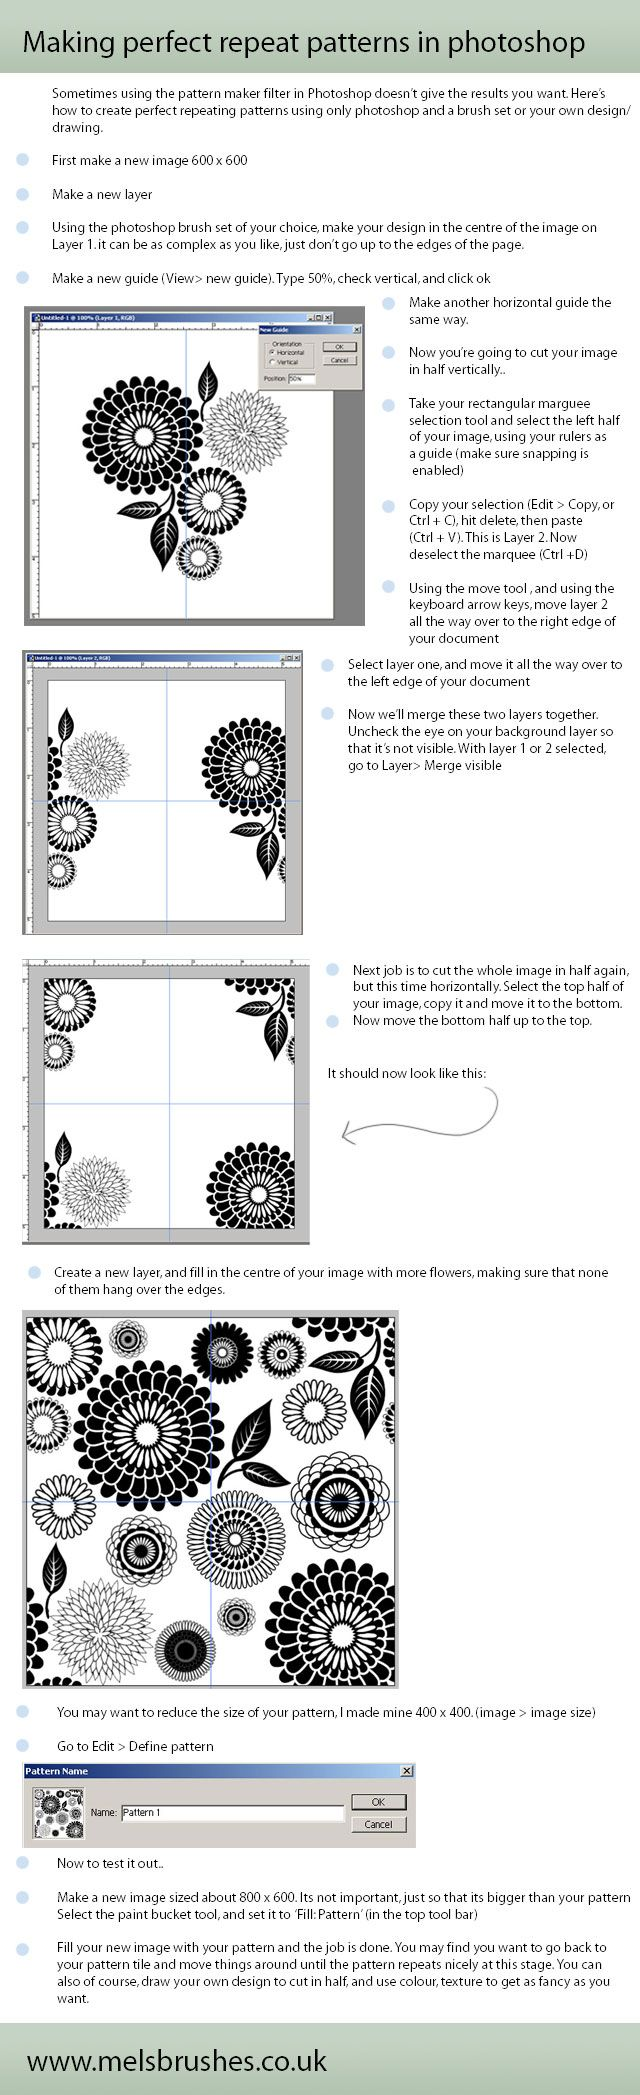 tutorial: making repeat patterns in Photoshop: Patterns Design, Photography Patterns, Repeat Patterns Photoshop, Website, Photoshop Patterns, Graphics Tutorials, Photoshop Design Tutorials, Create Repeat, Photoshop Tutorials Design